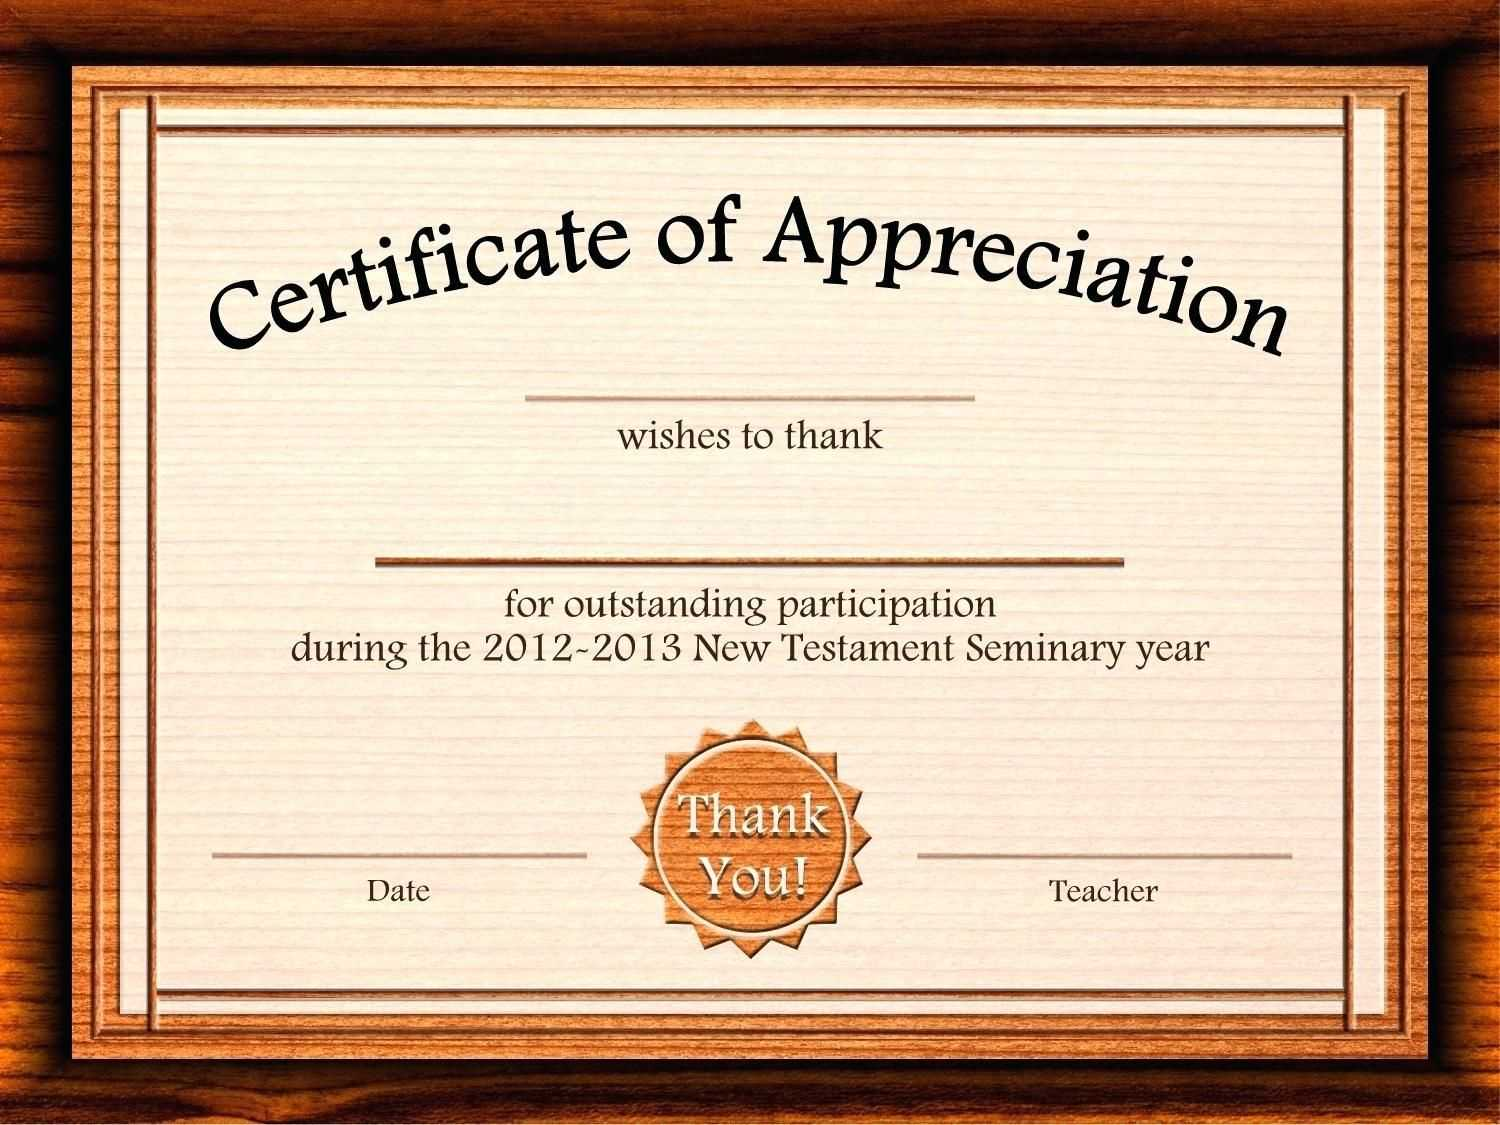 Template: Editable Certificate Of Appreciation Template Free Intended For Professional Certificate Templates For Word